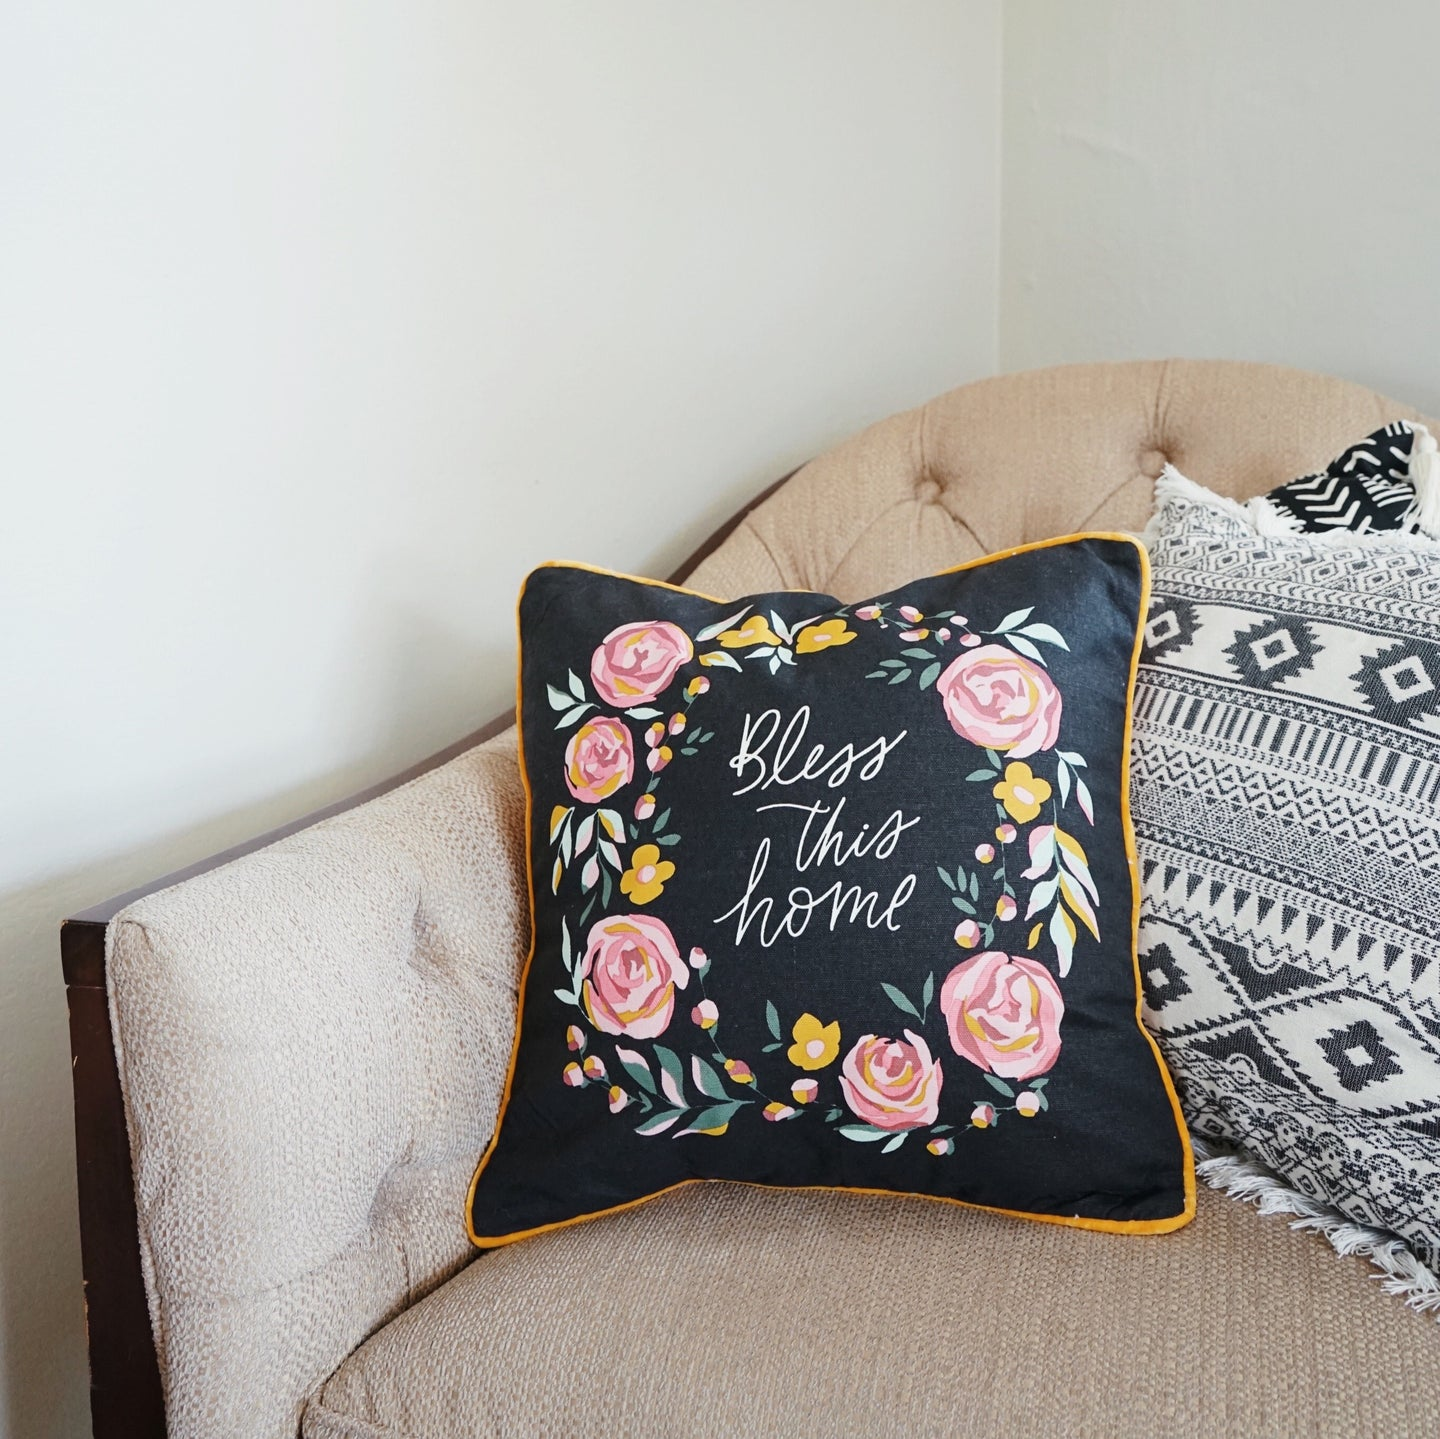 Botanical | Bless This Home Pillow